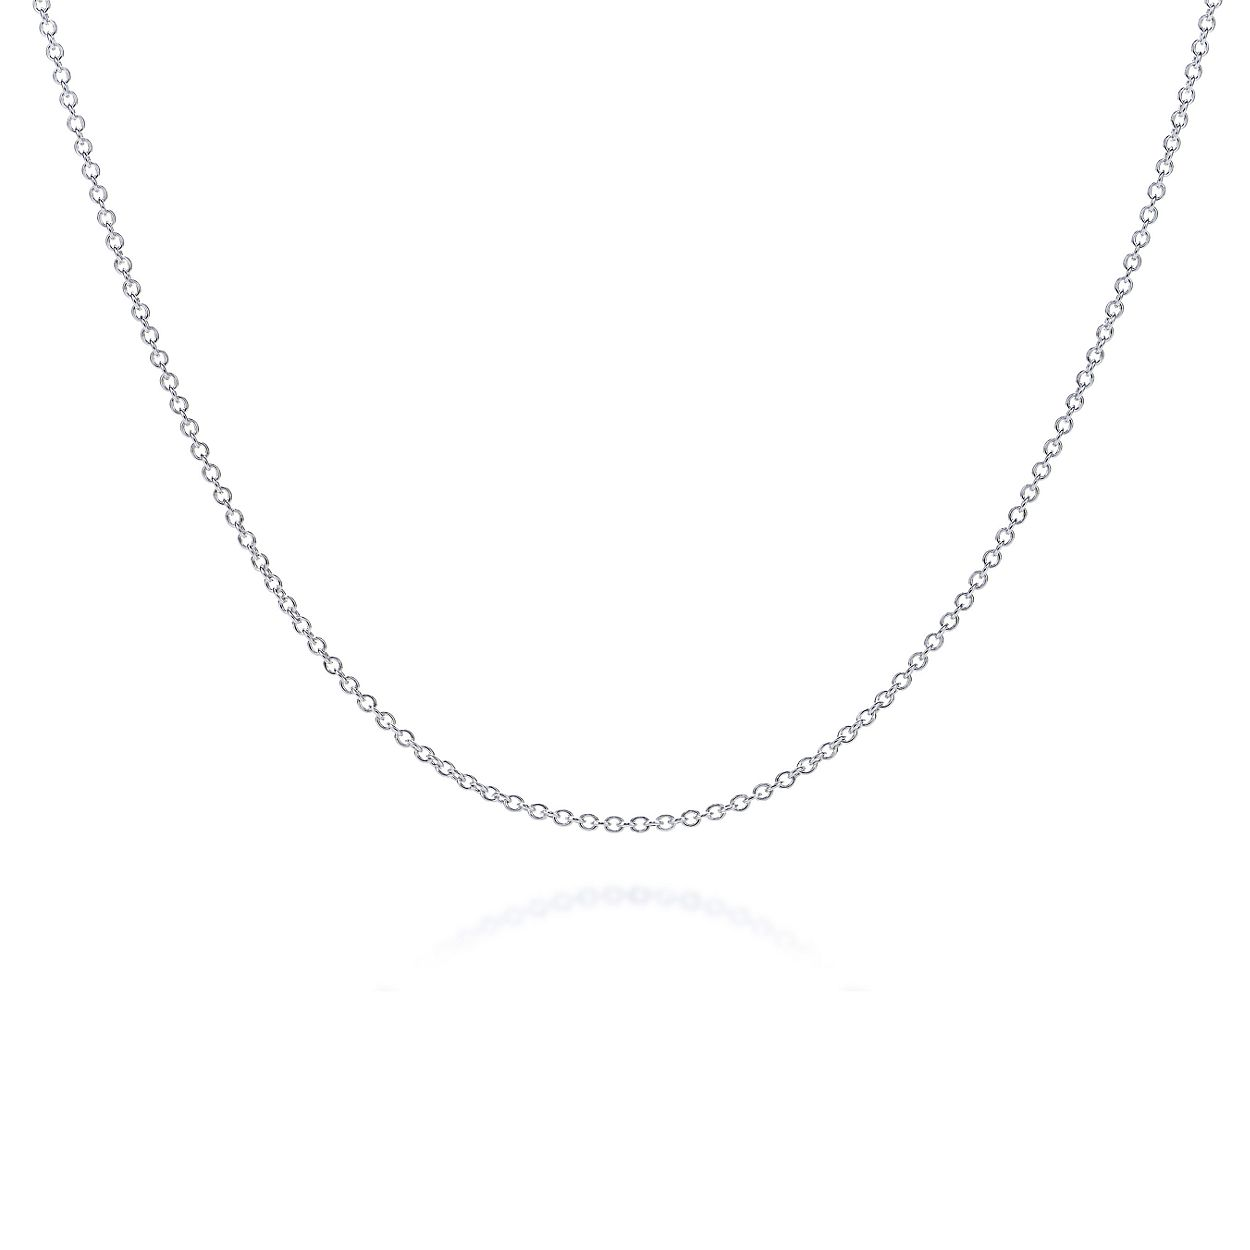 constrain necklaces fit co silver in ed tiffany fmt sterling chain id necklace jewelry wid hei m pendants